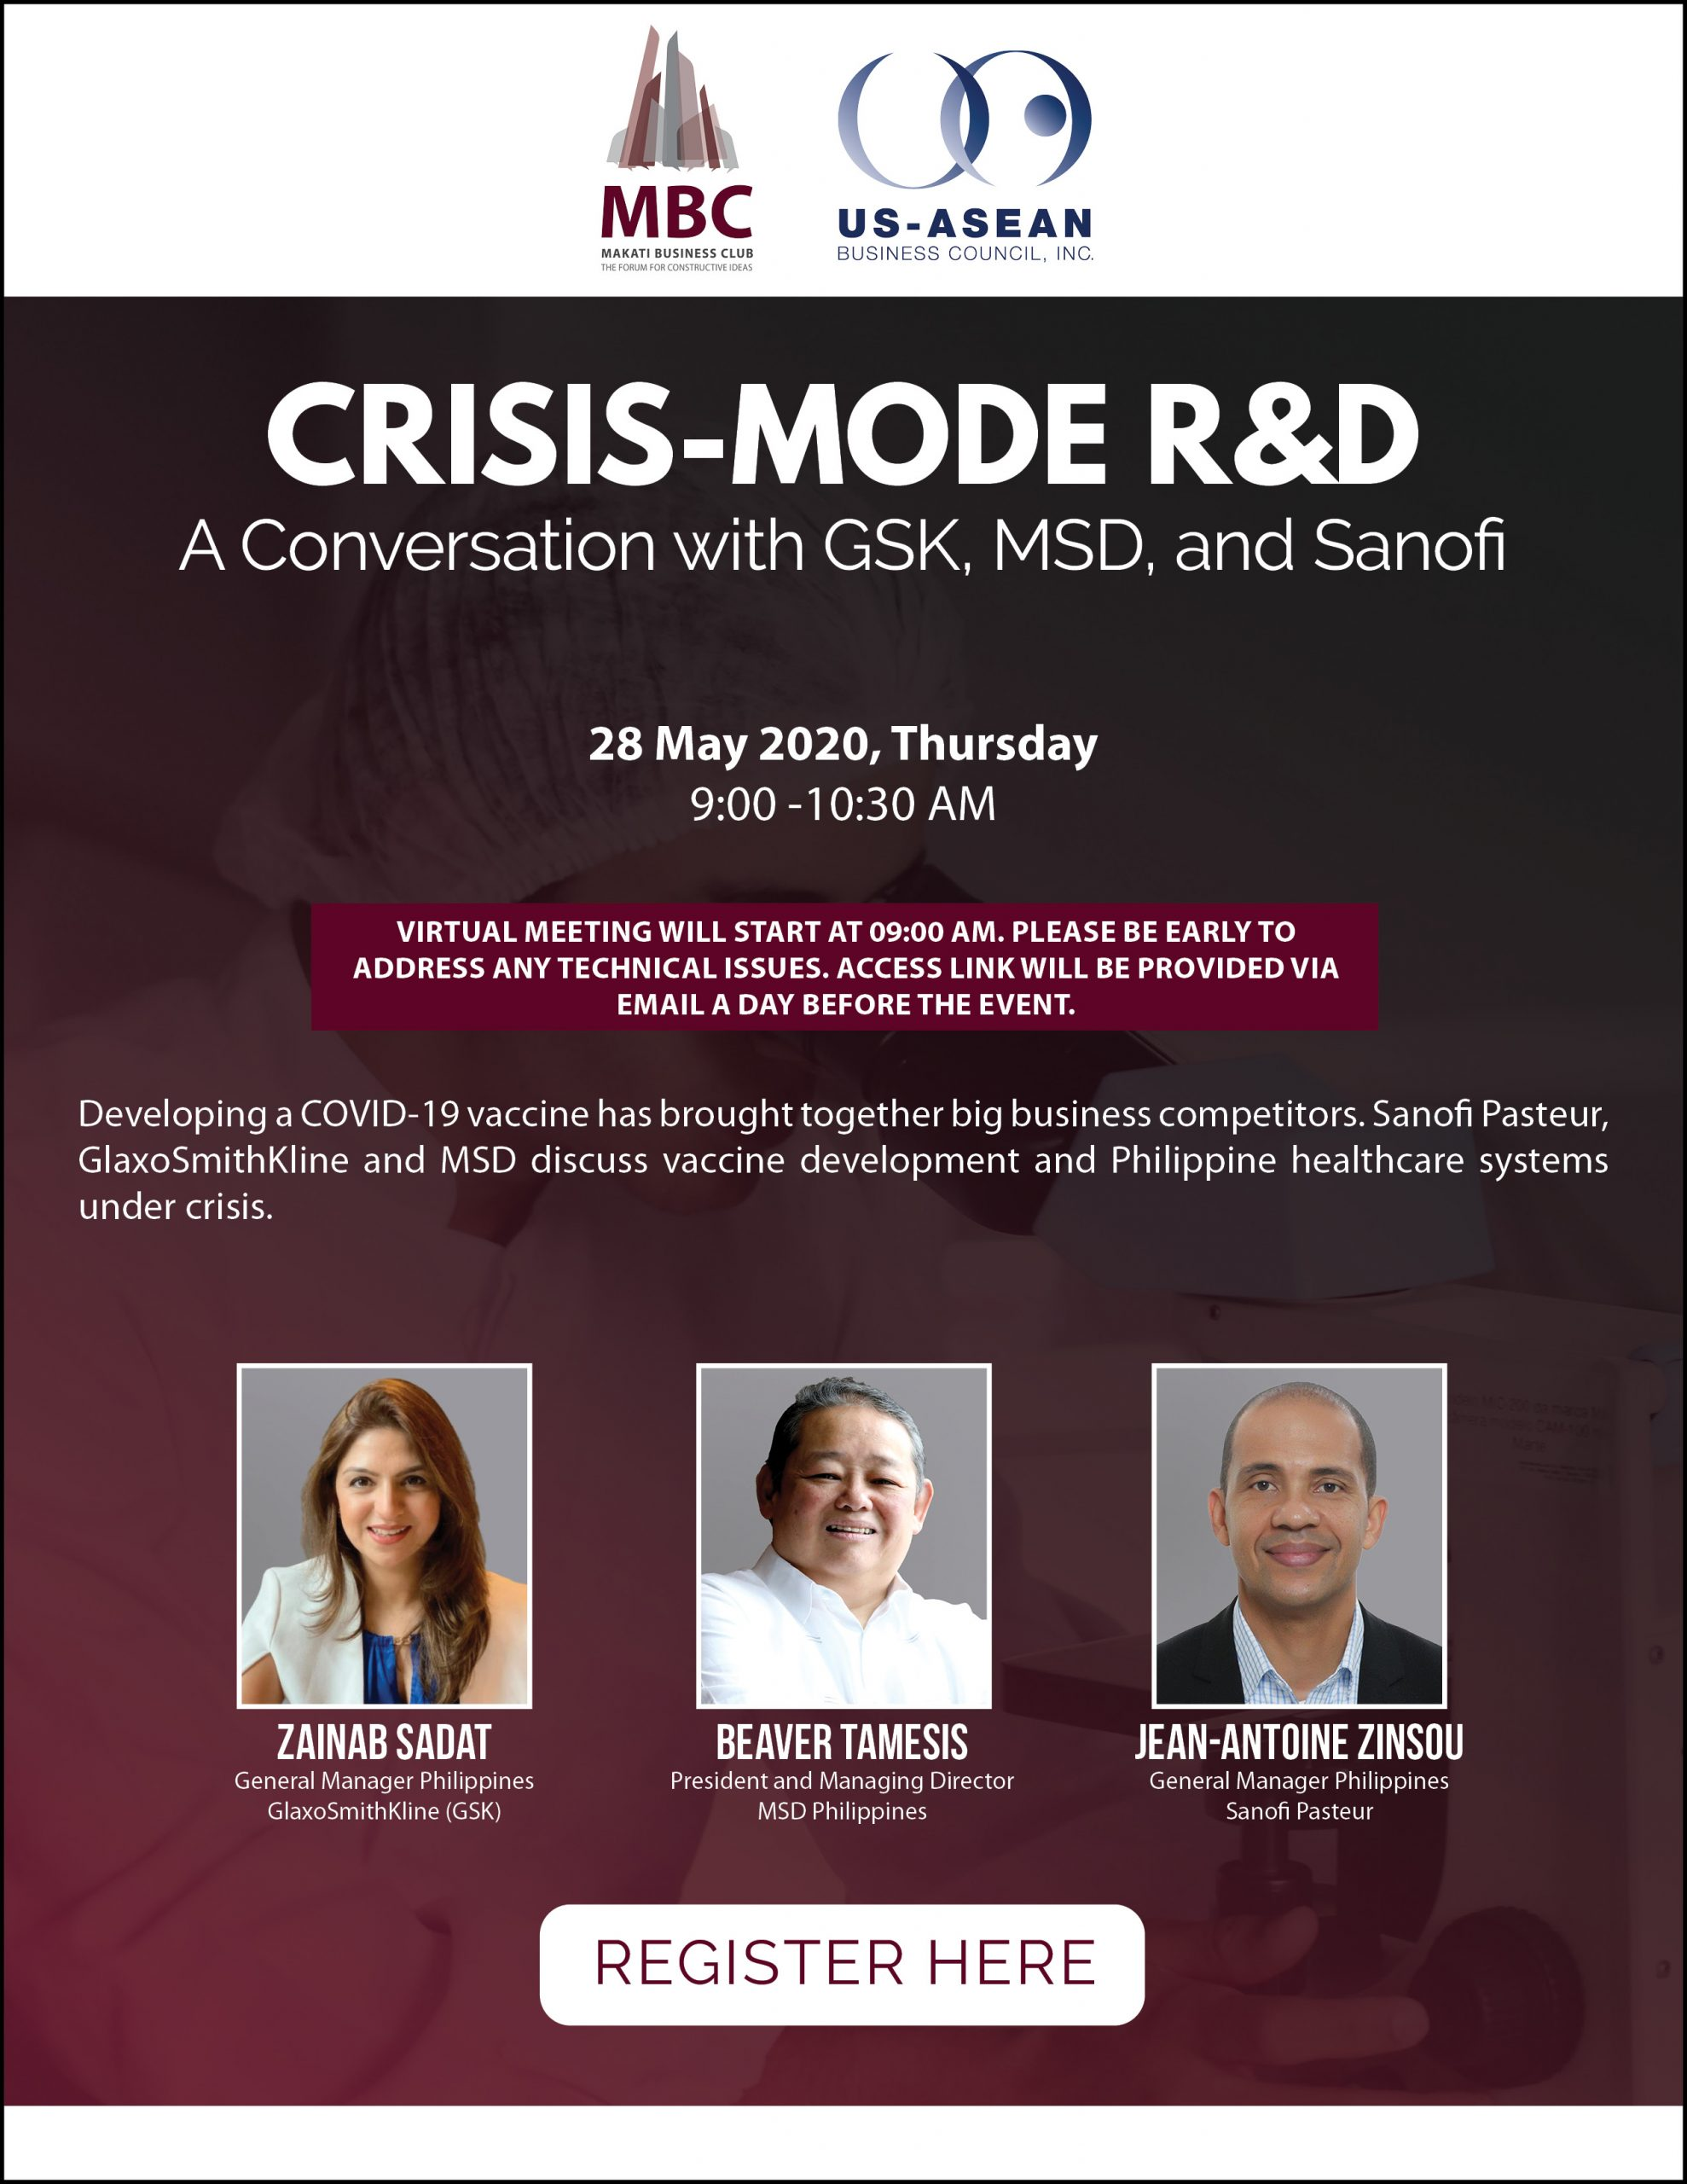 Crisis-Mode R&D: A Conversation with GSK, MSD, and Sanofi